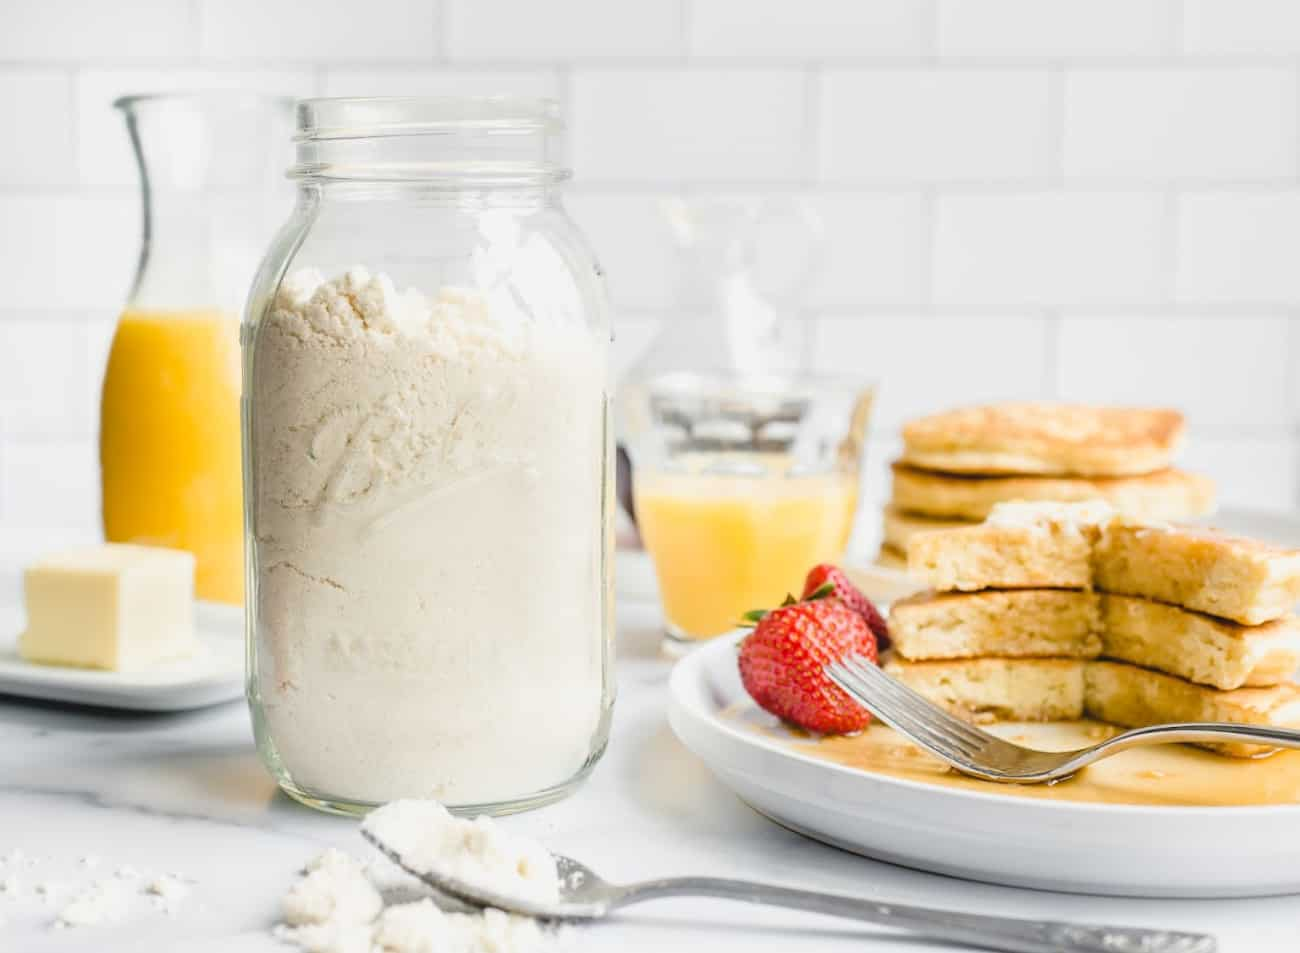 Jar full of homemade bisquick mix next to a stack of homemade pancakes